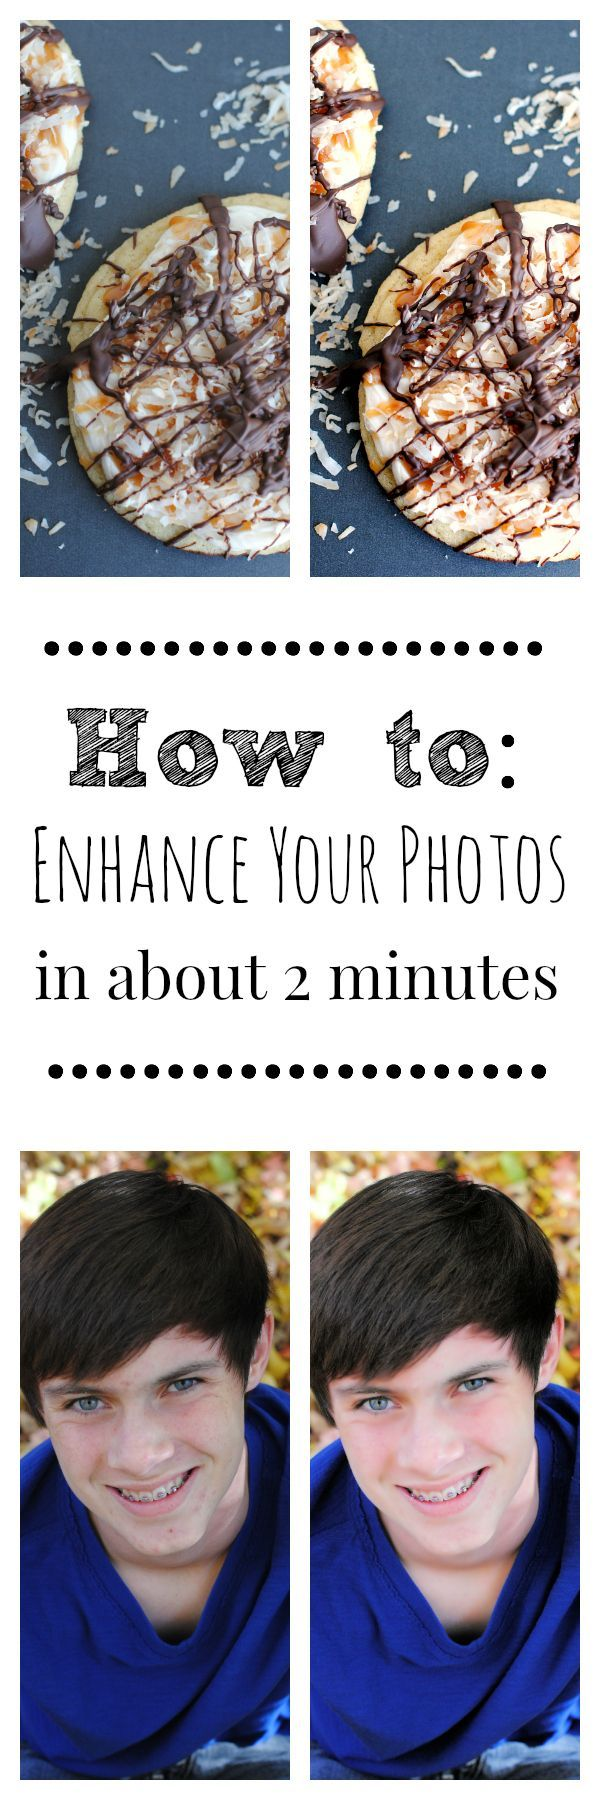 How to Edit Your Photos Online for Free in About 2 Minutes